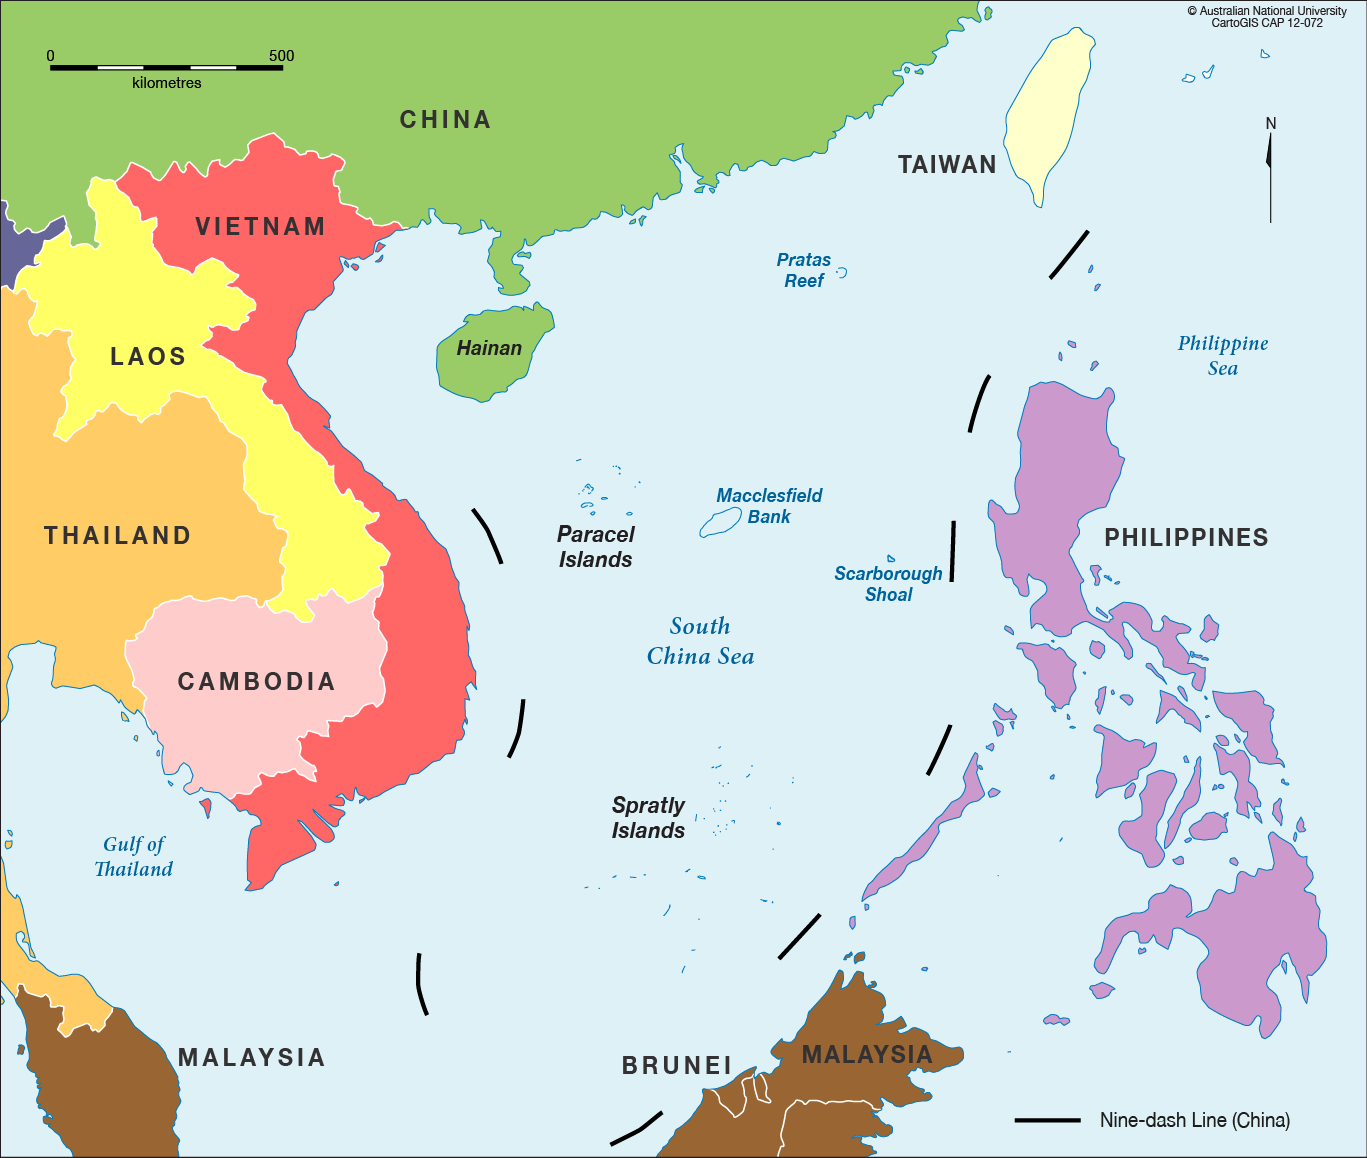 Map Of South China Sea South China Sea in colour   CartoGIS Services Maps Online   ANU